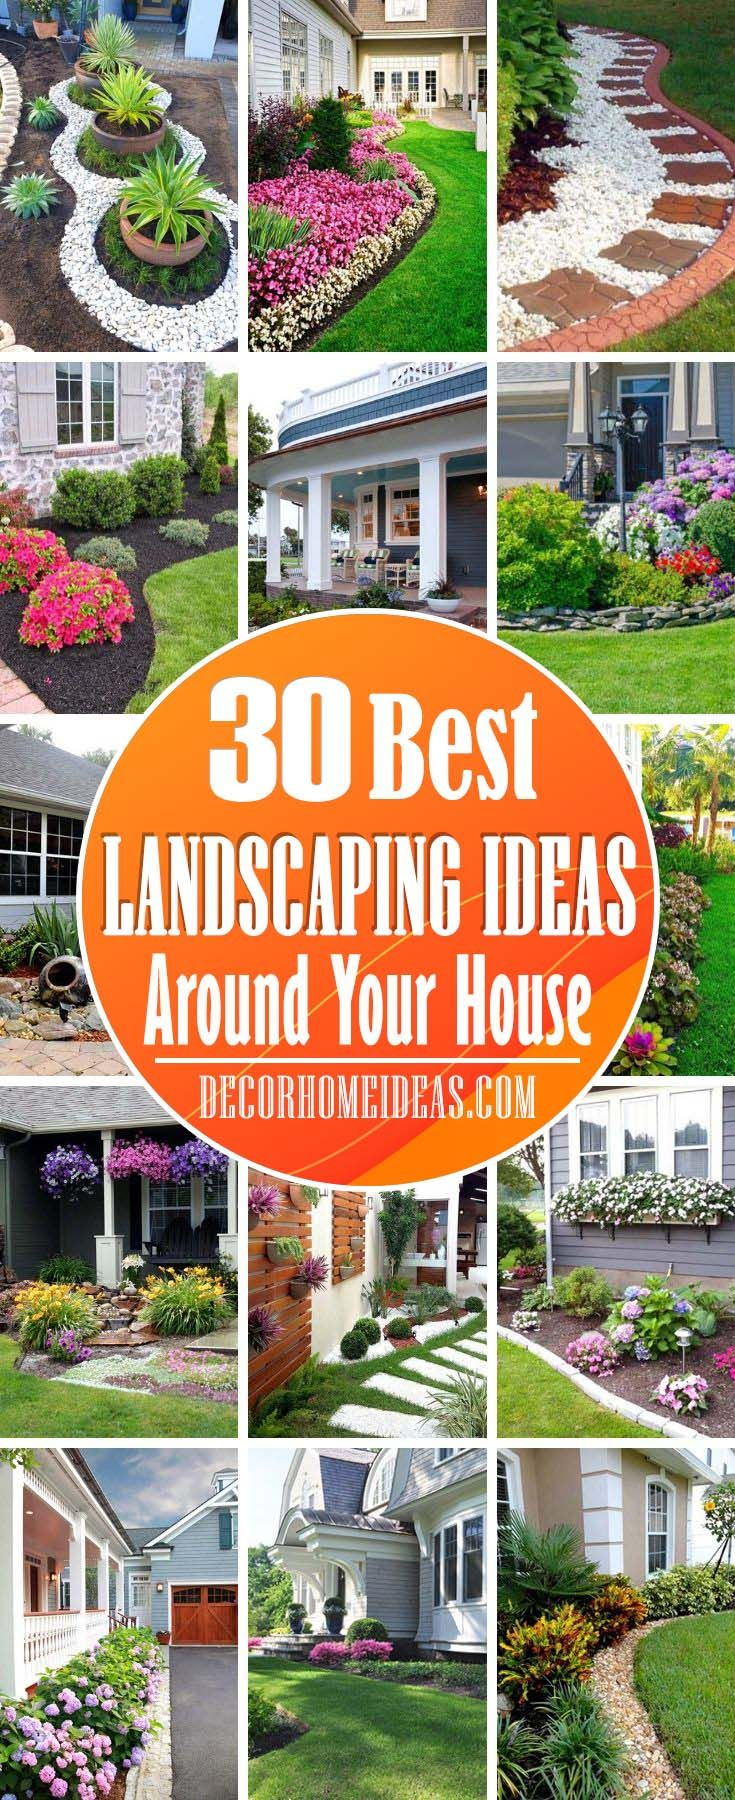 30 Best Landscaping Ideas Around Your House Decor Home Ideas In 2020 Front Yard Landscaping Design Outdoor Gardens Landscaping Backyard Landscaping House front yard landscaping ideas